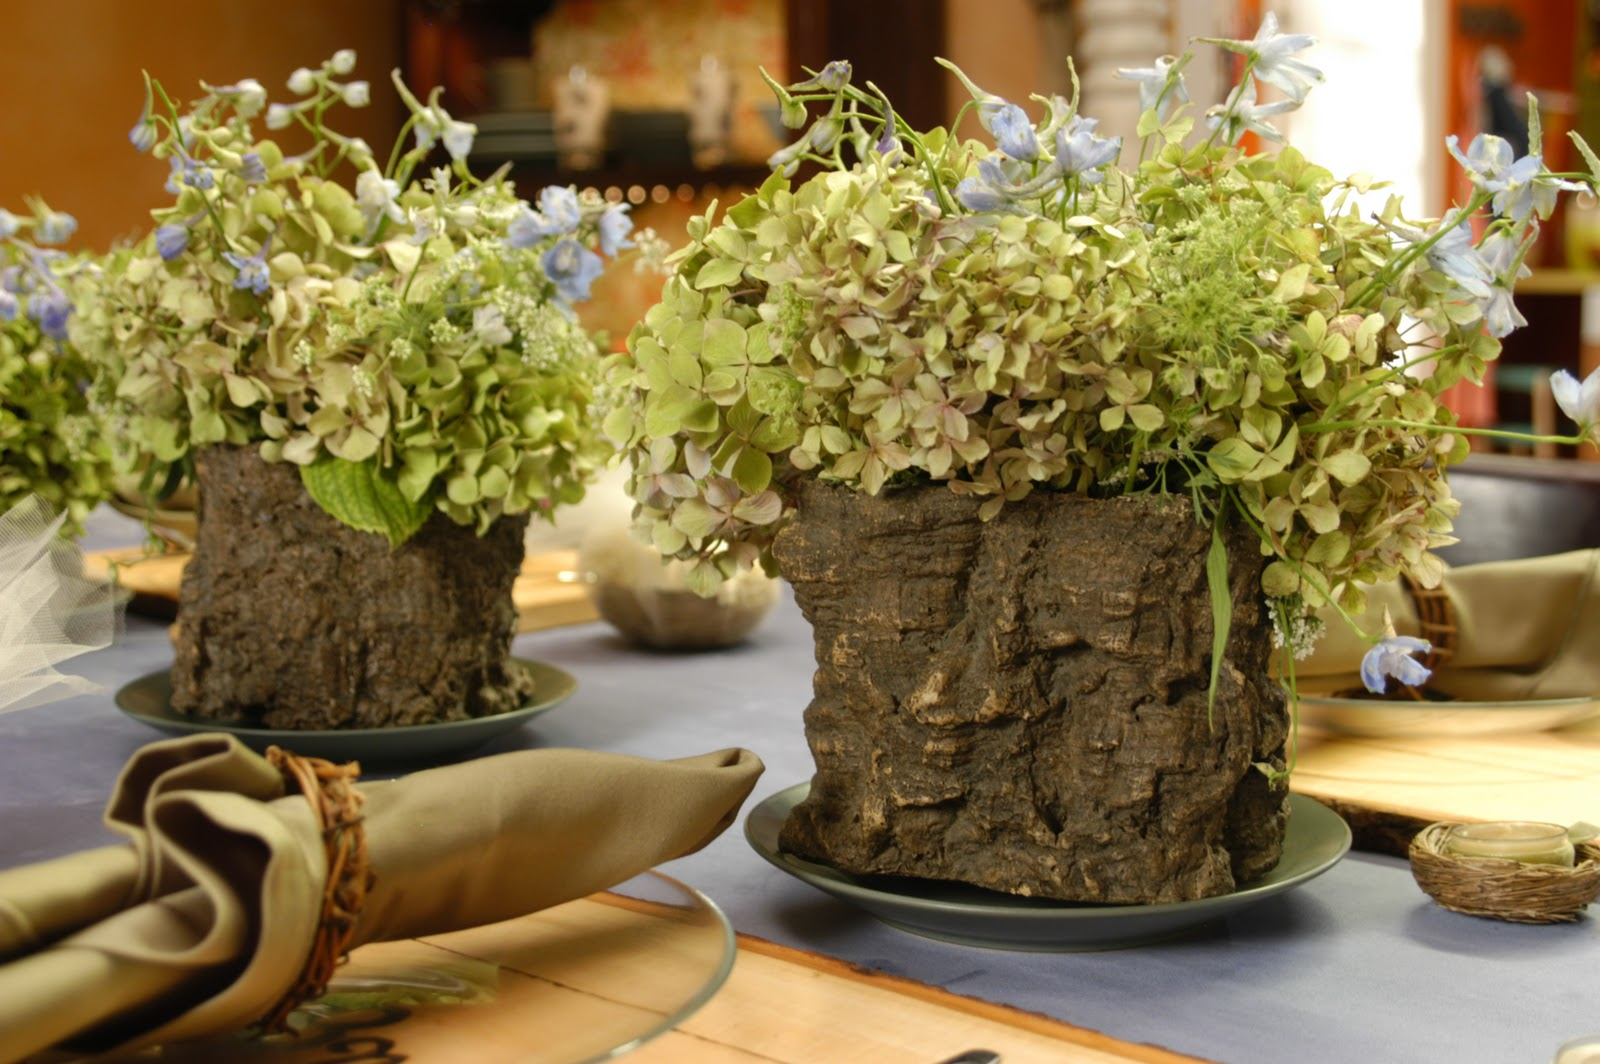 17 Best images about Rustic Wedding Centerpieces on ...  |Diy Rustic Wedding Table Centerpieces